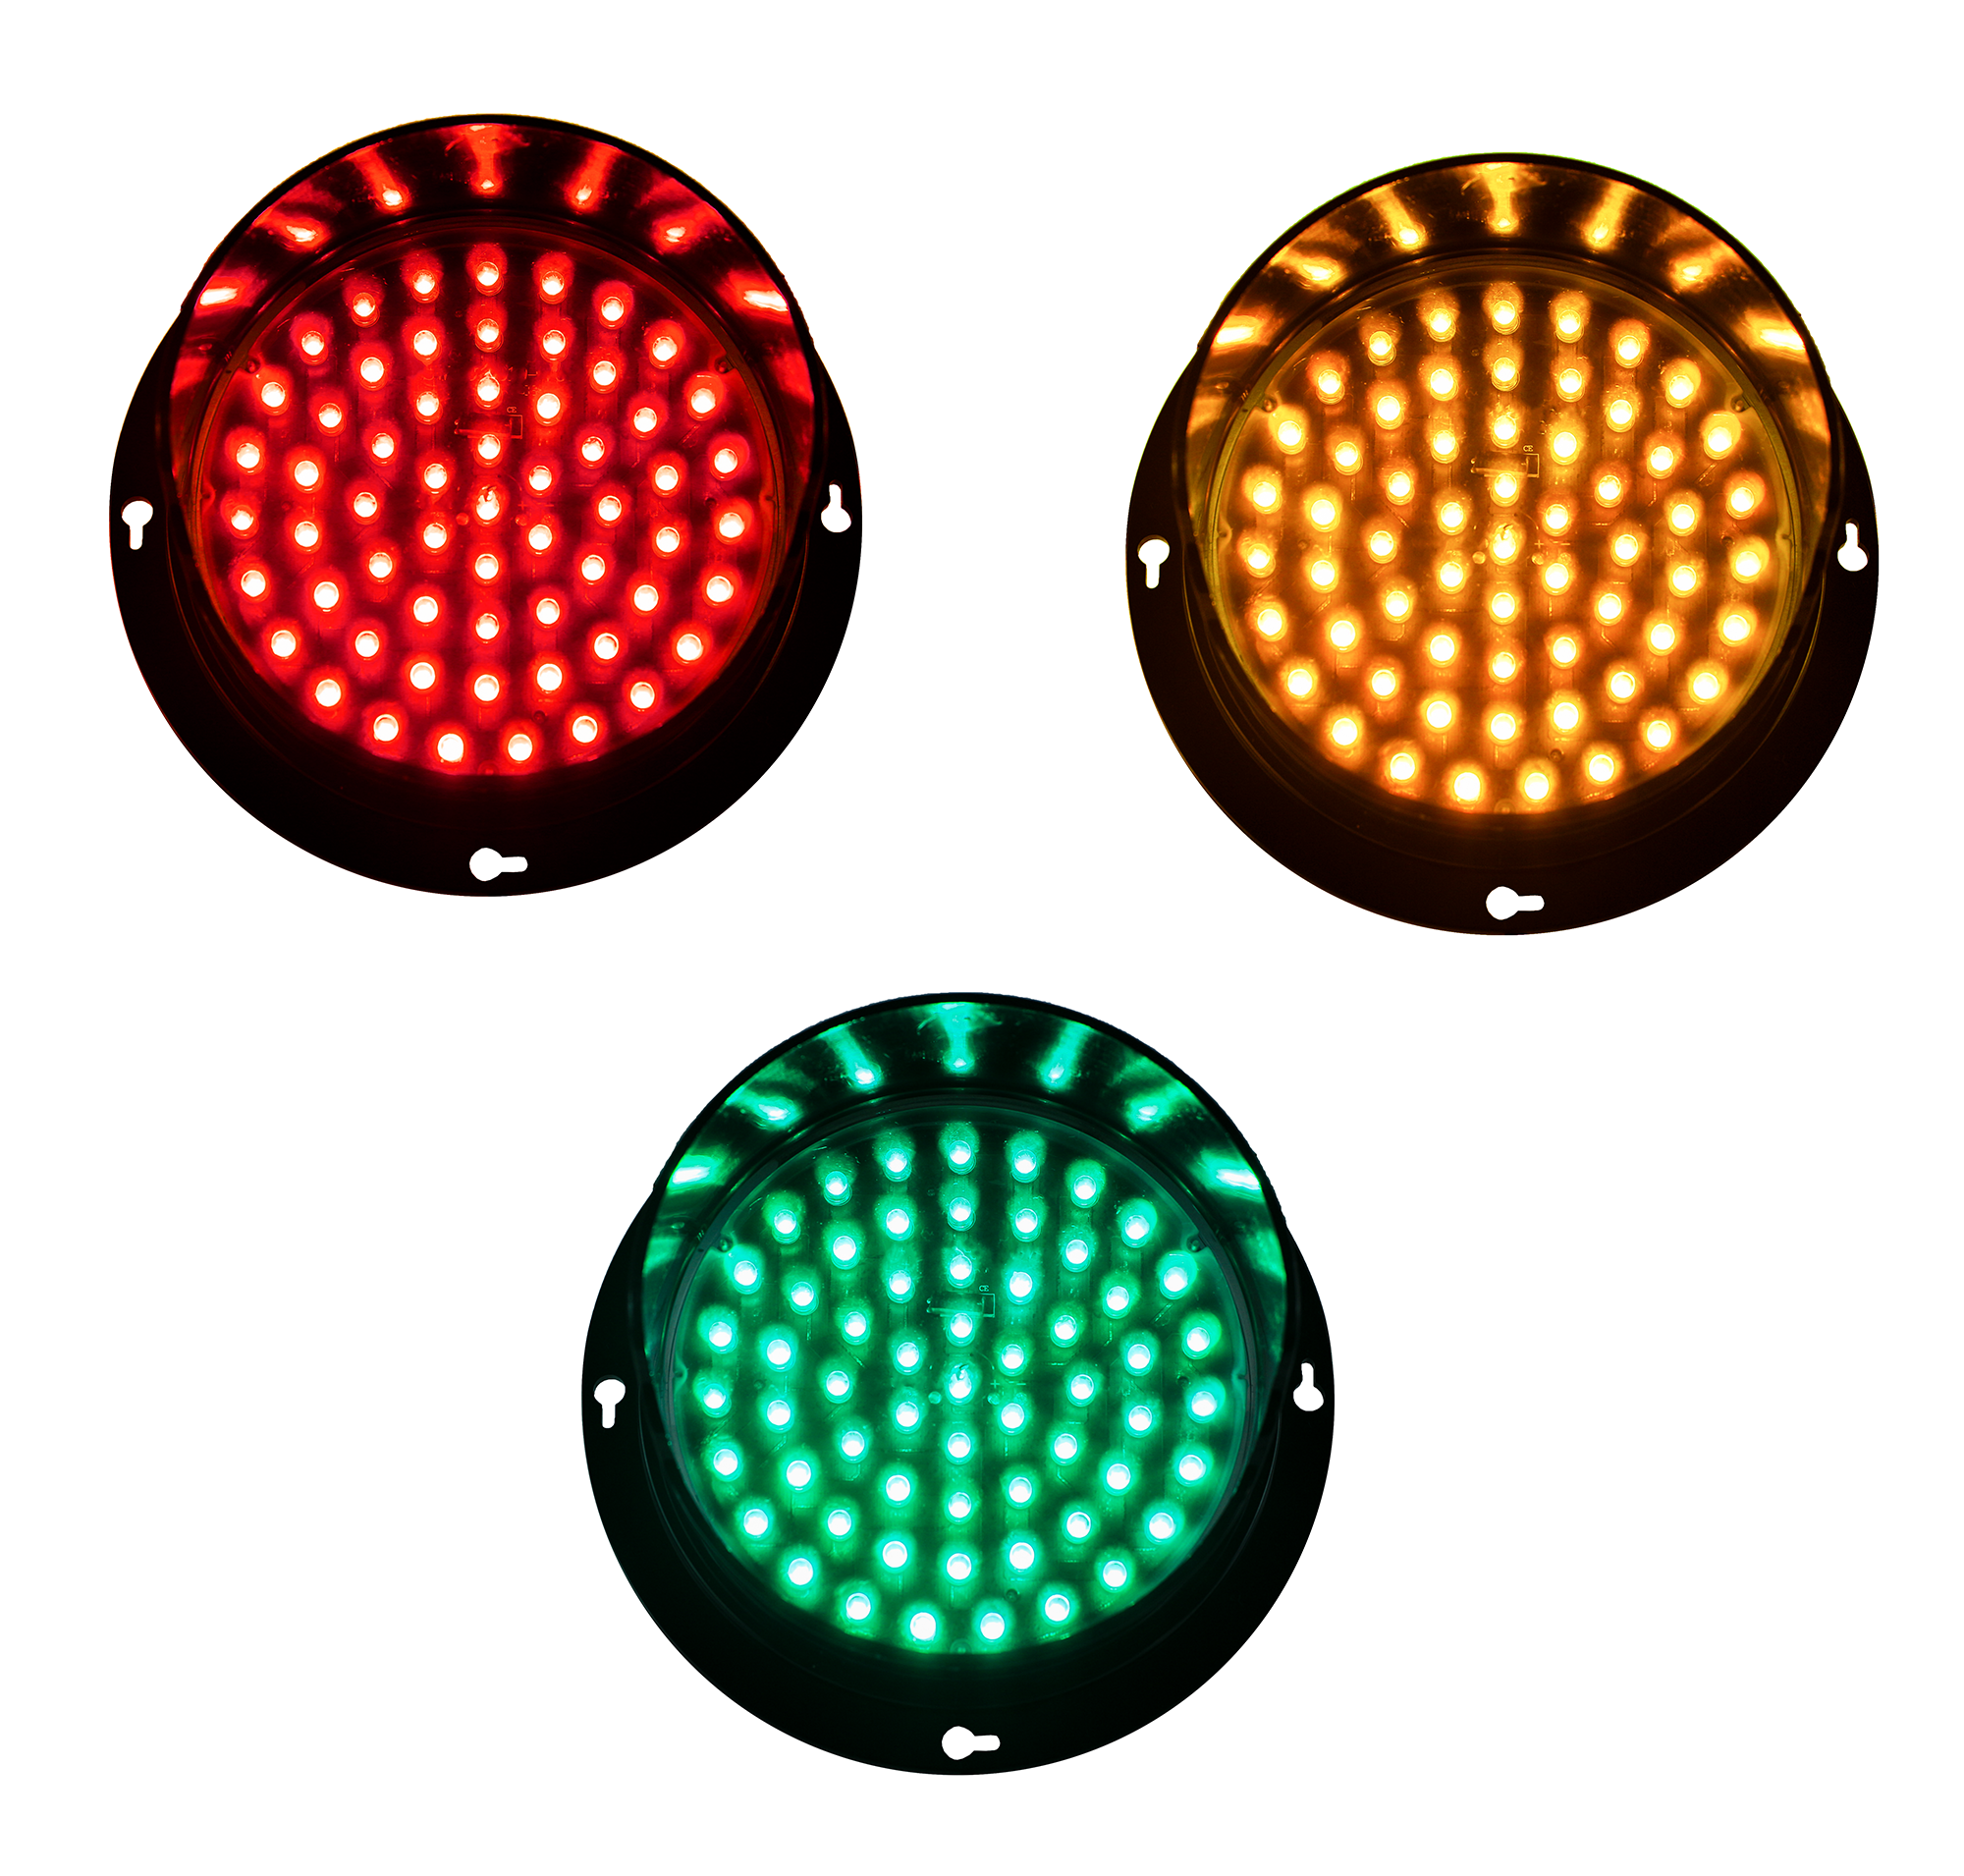 BNR BNR 125mm Surface Mount IP65 LED Pixel Cluster Signal Lights - BNR Industrial